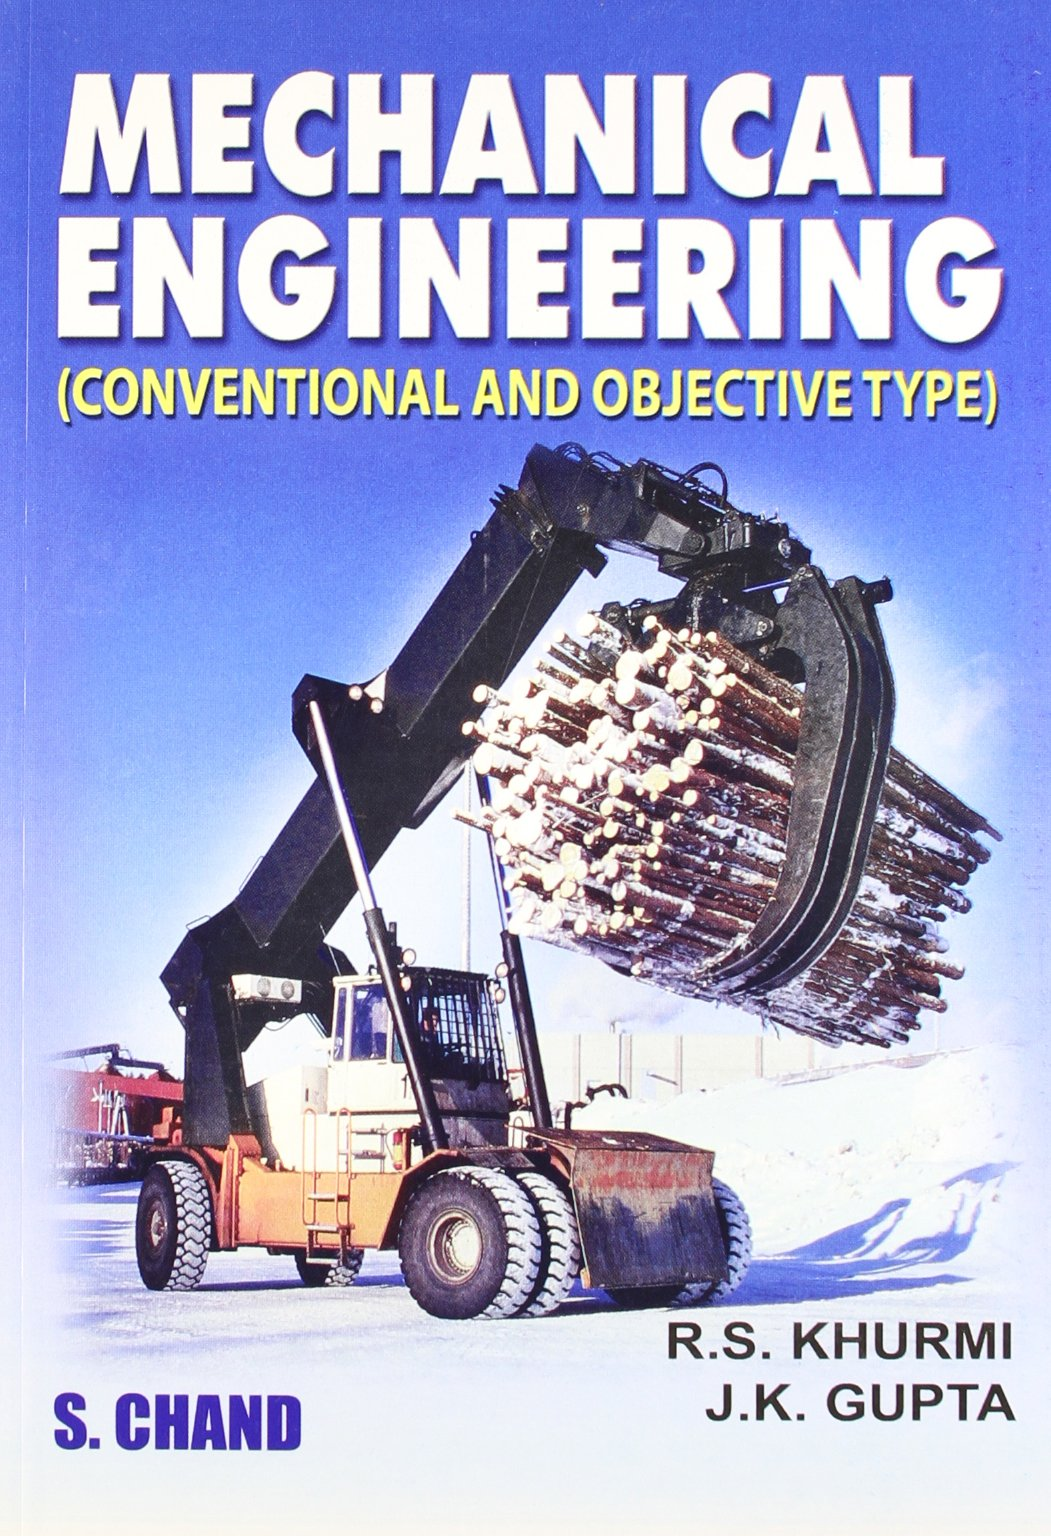 MECHANICAL ENGINEERING (CONVENTIONAL AND OBJECTIVE TYPE) BY